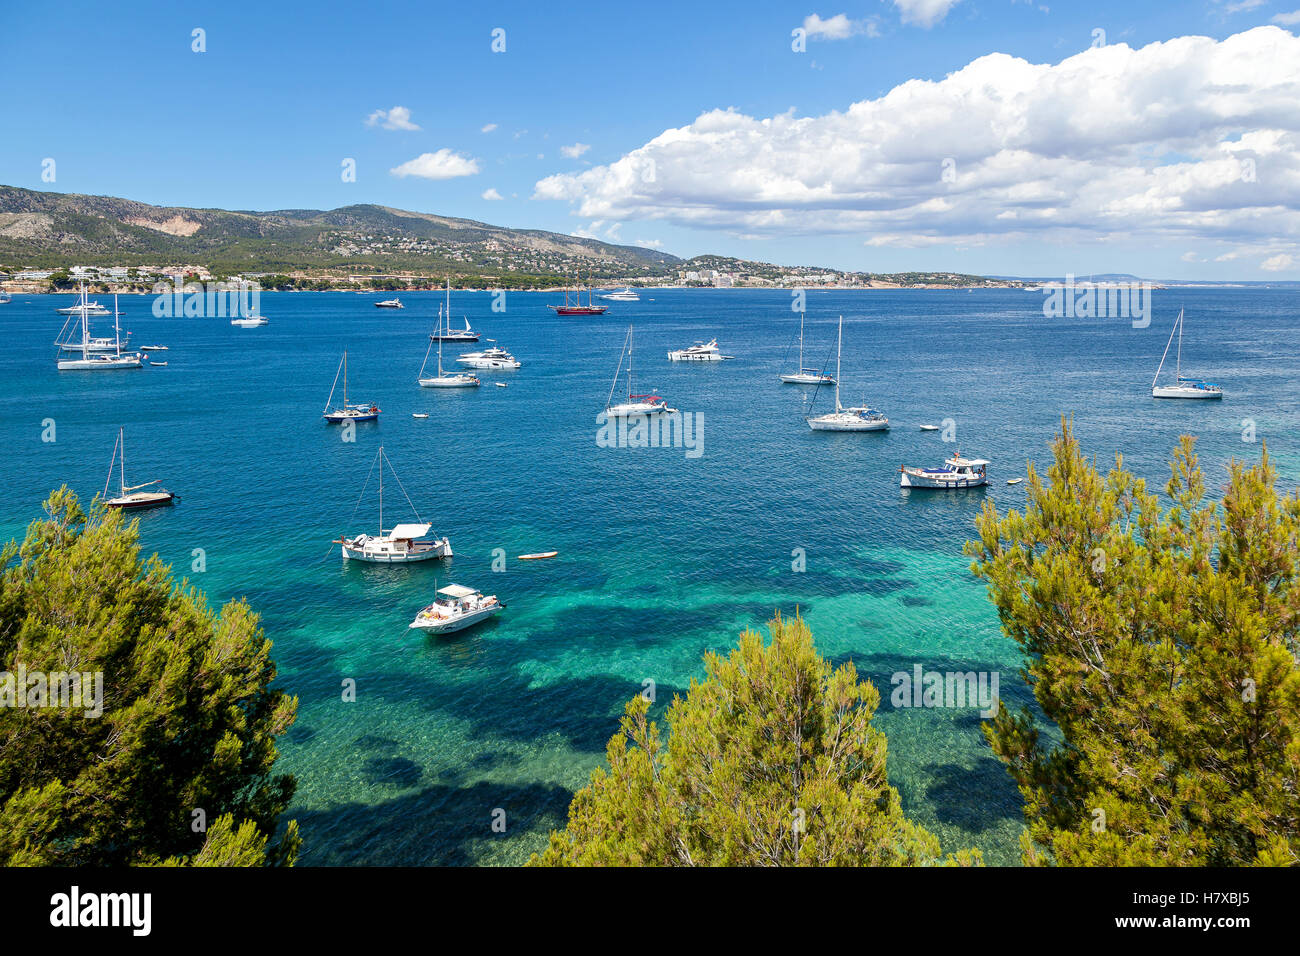 Azure harbor with lots of sailers and cutters rock on the waves transparent. Dangling a massive cloud over the mountains - Stock Image